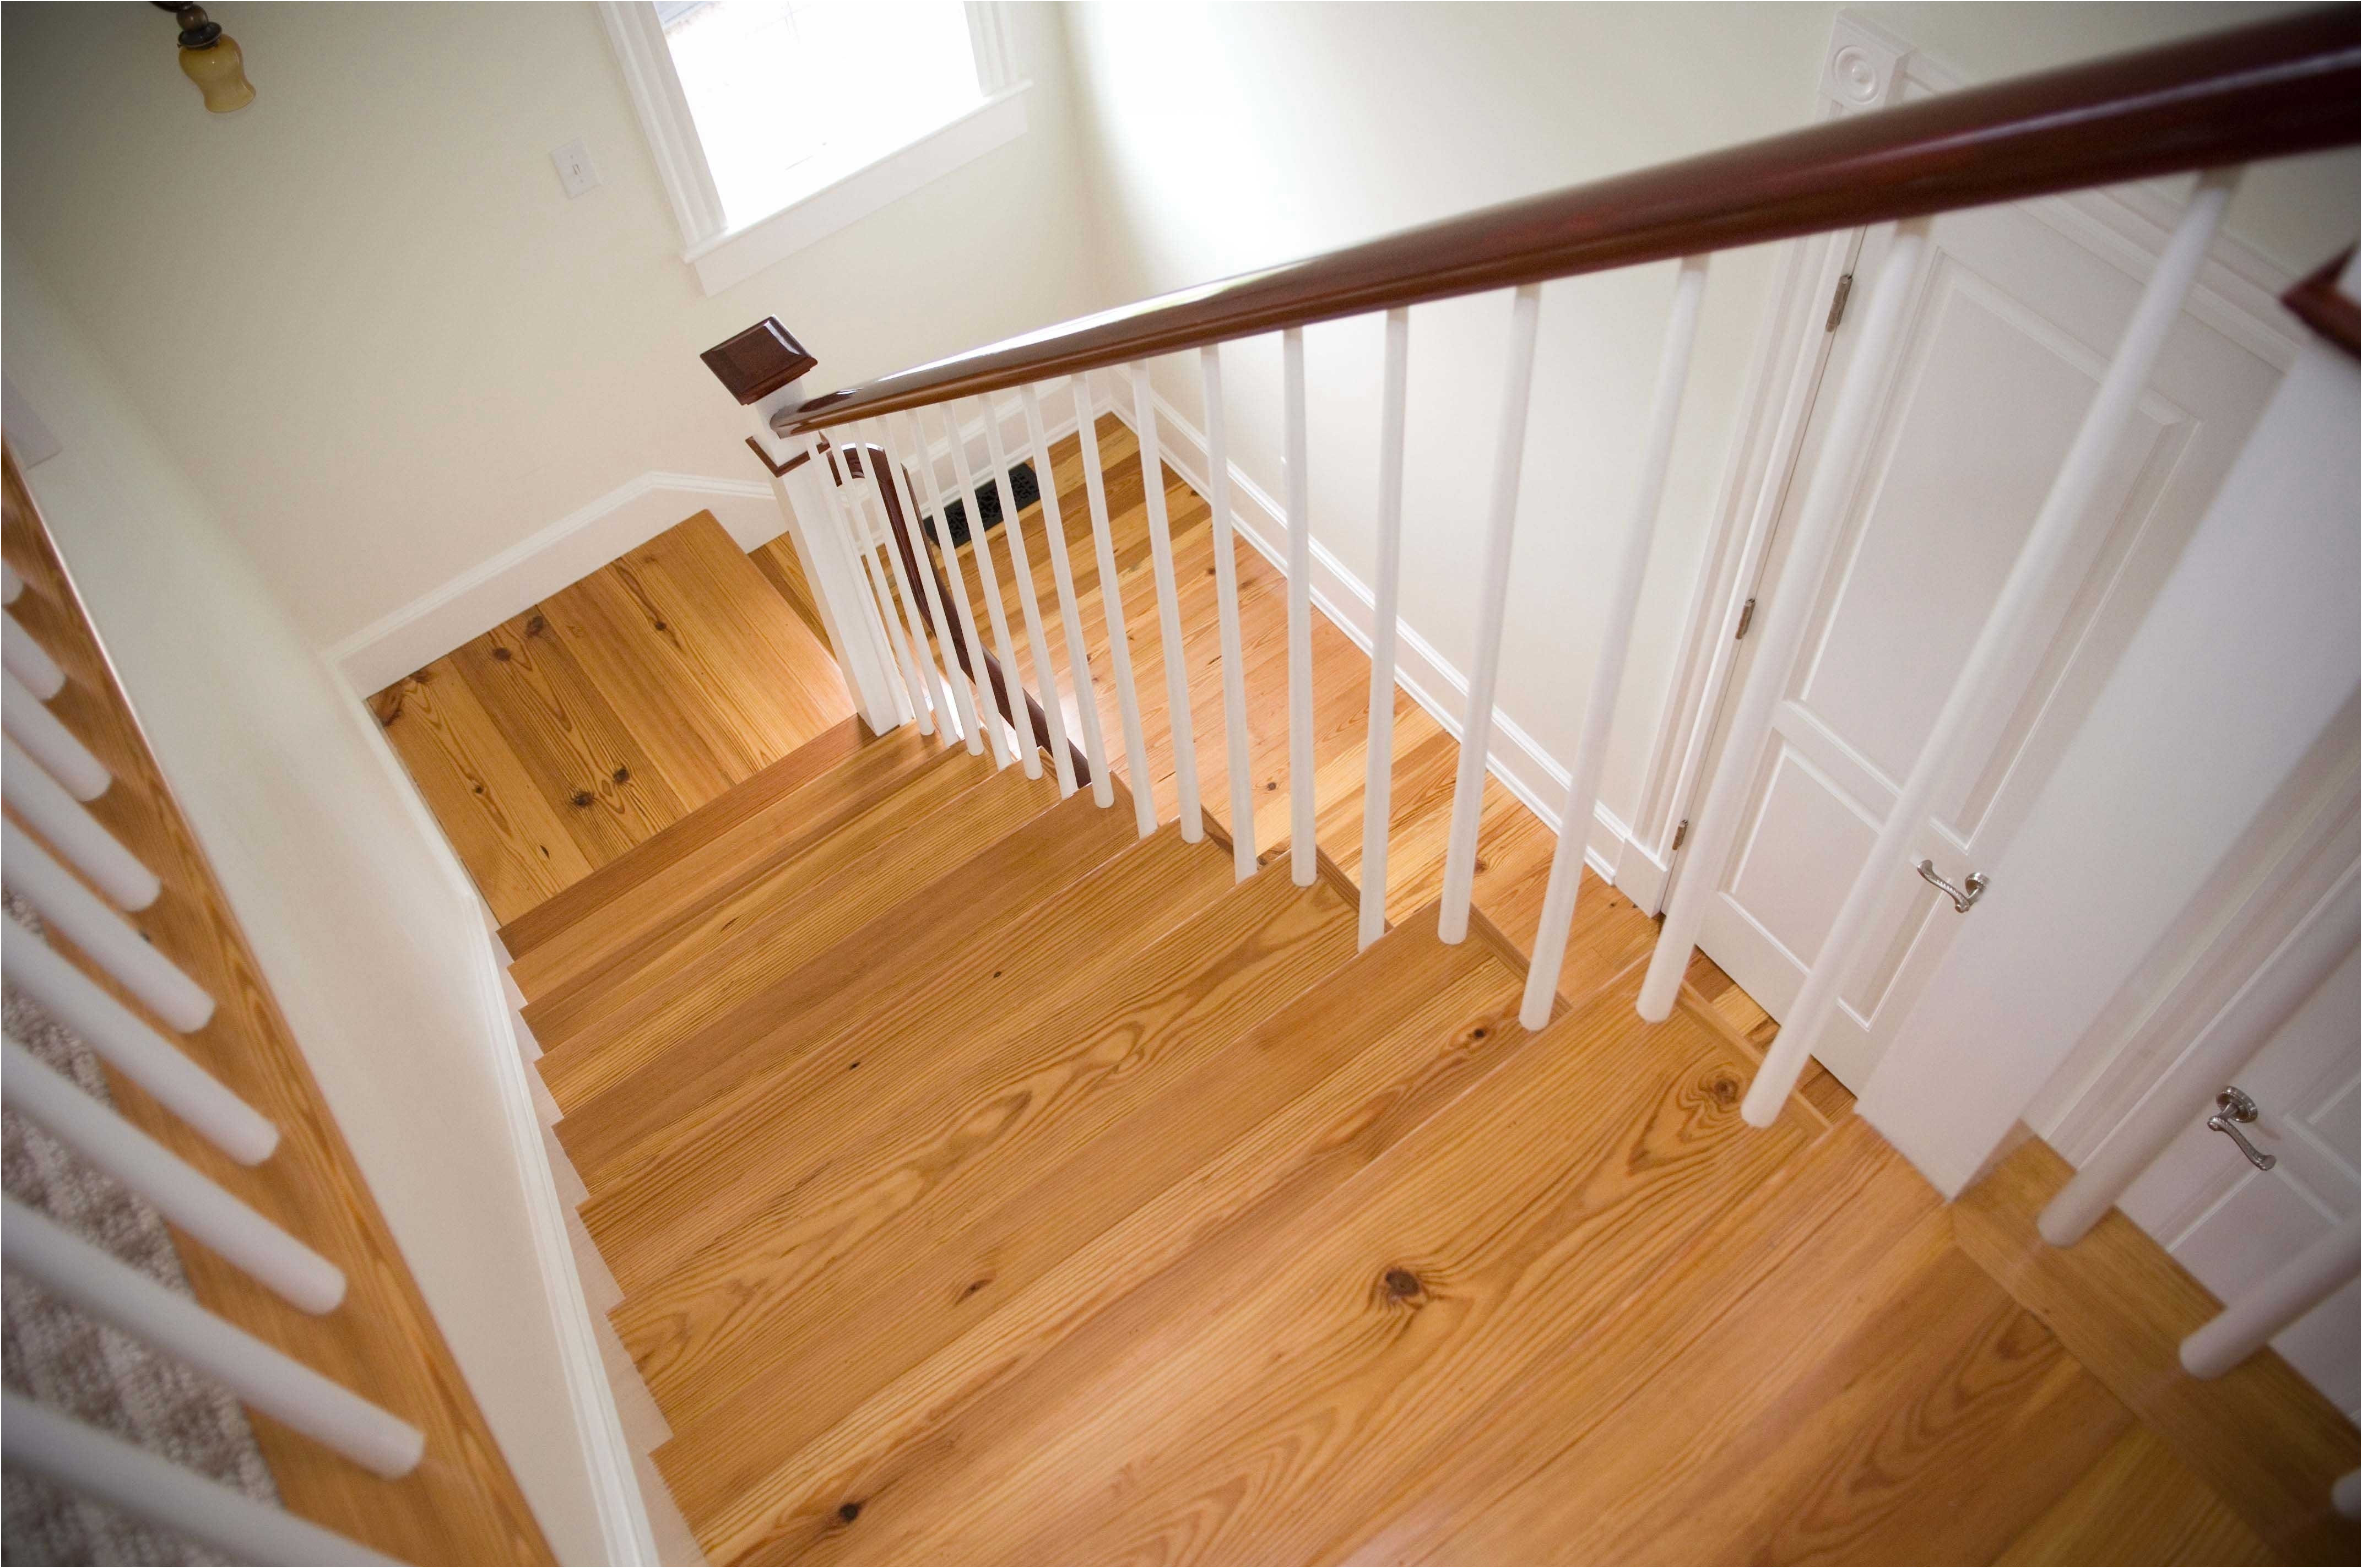 how to install hardwood floors on stairs landing of 14 incredible stair treads for hardwood floors interior stairs within stair treads for hardwood floors fresh custom stair treads classic millworks 006 custom wood stair treads